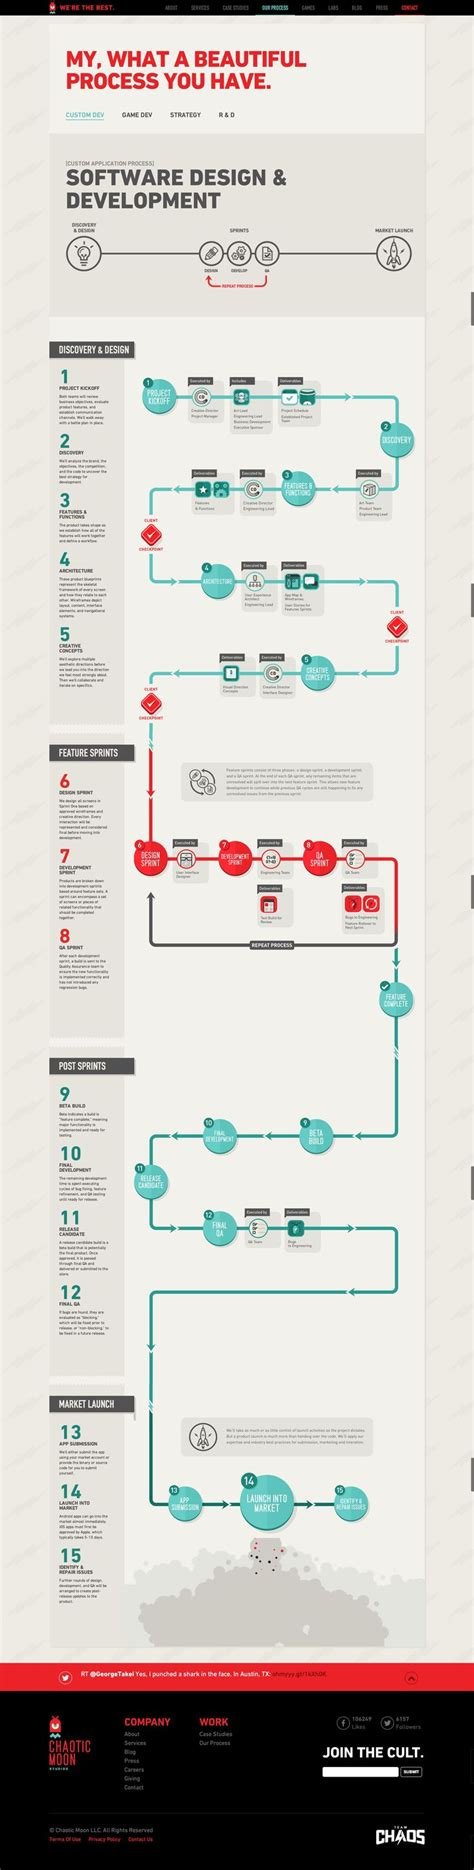 Brand Development Process Template Awesome Best Social 25 Best Ideas About Process Infographic On